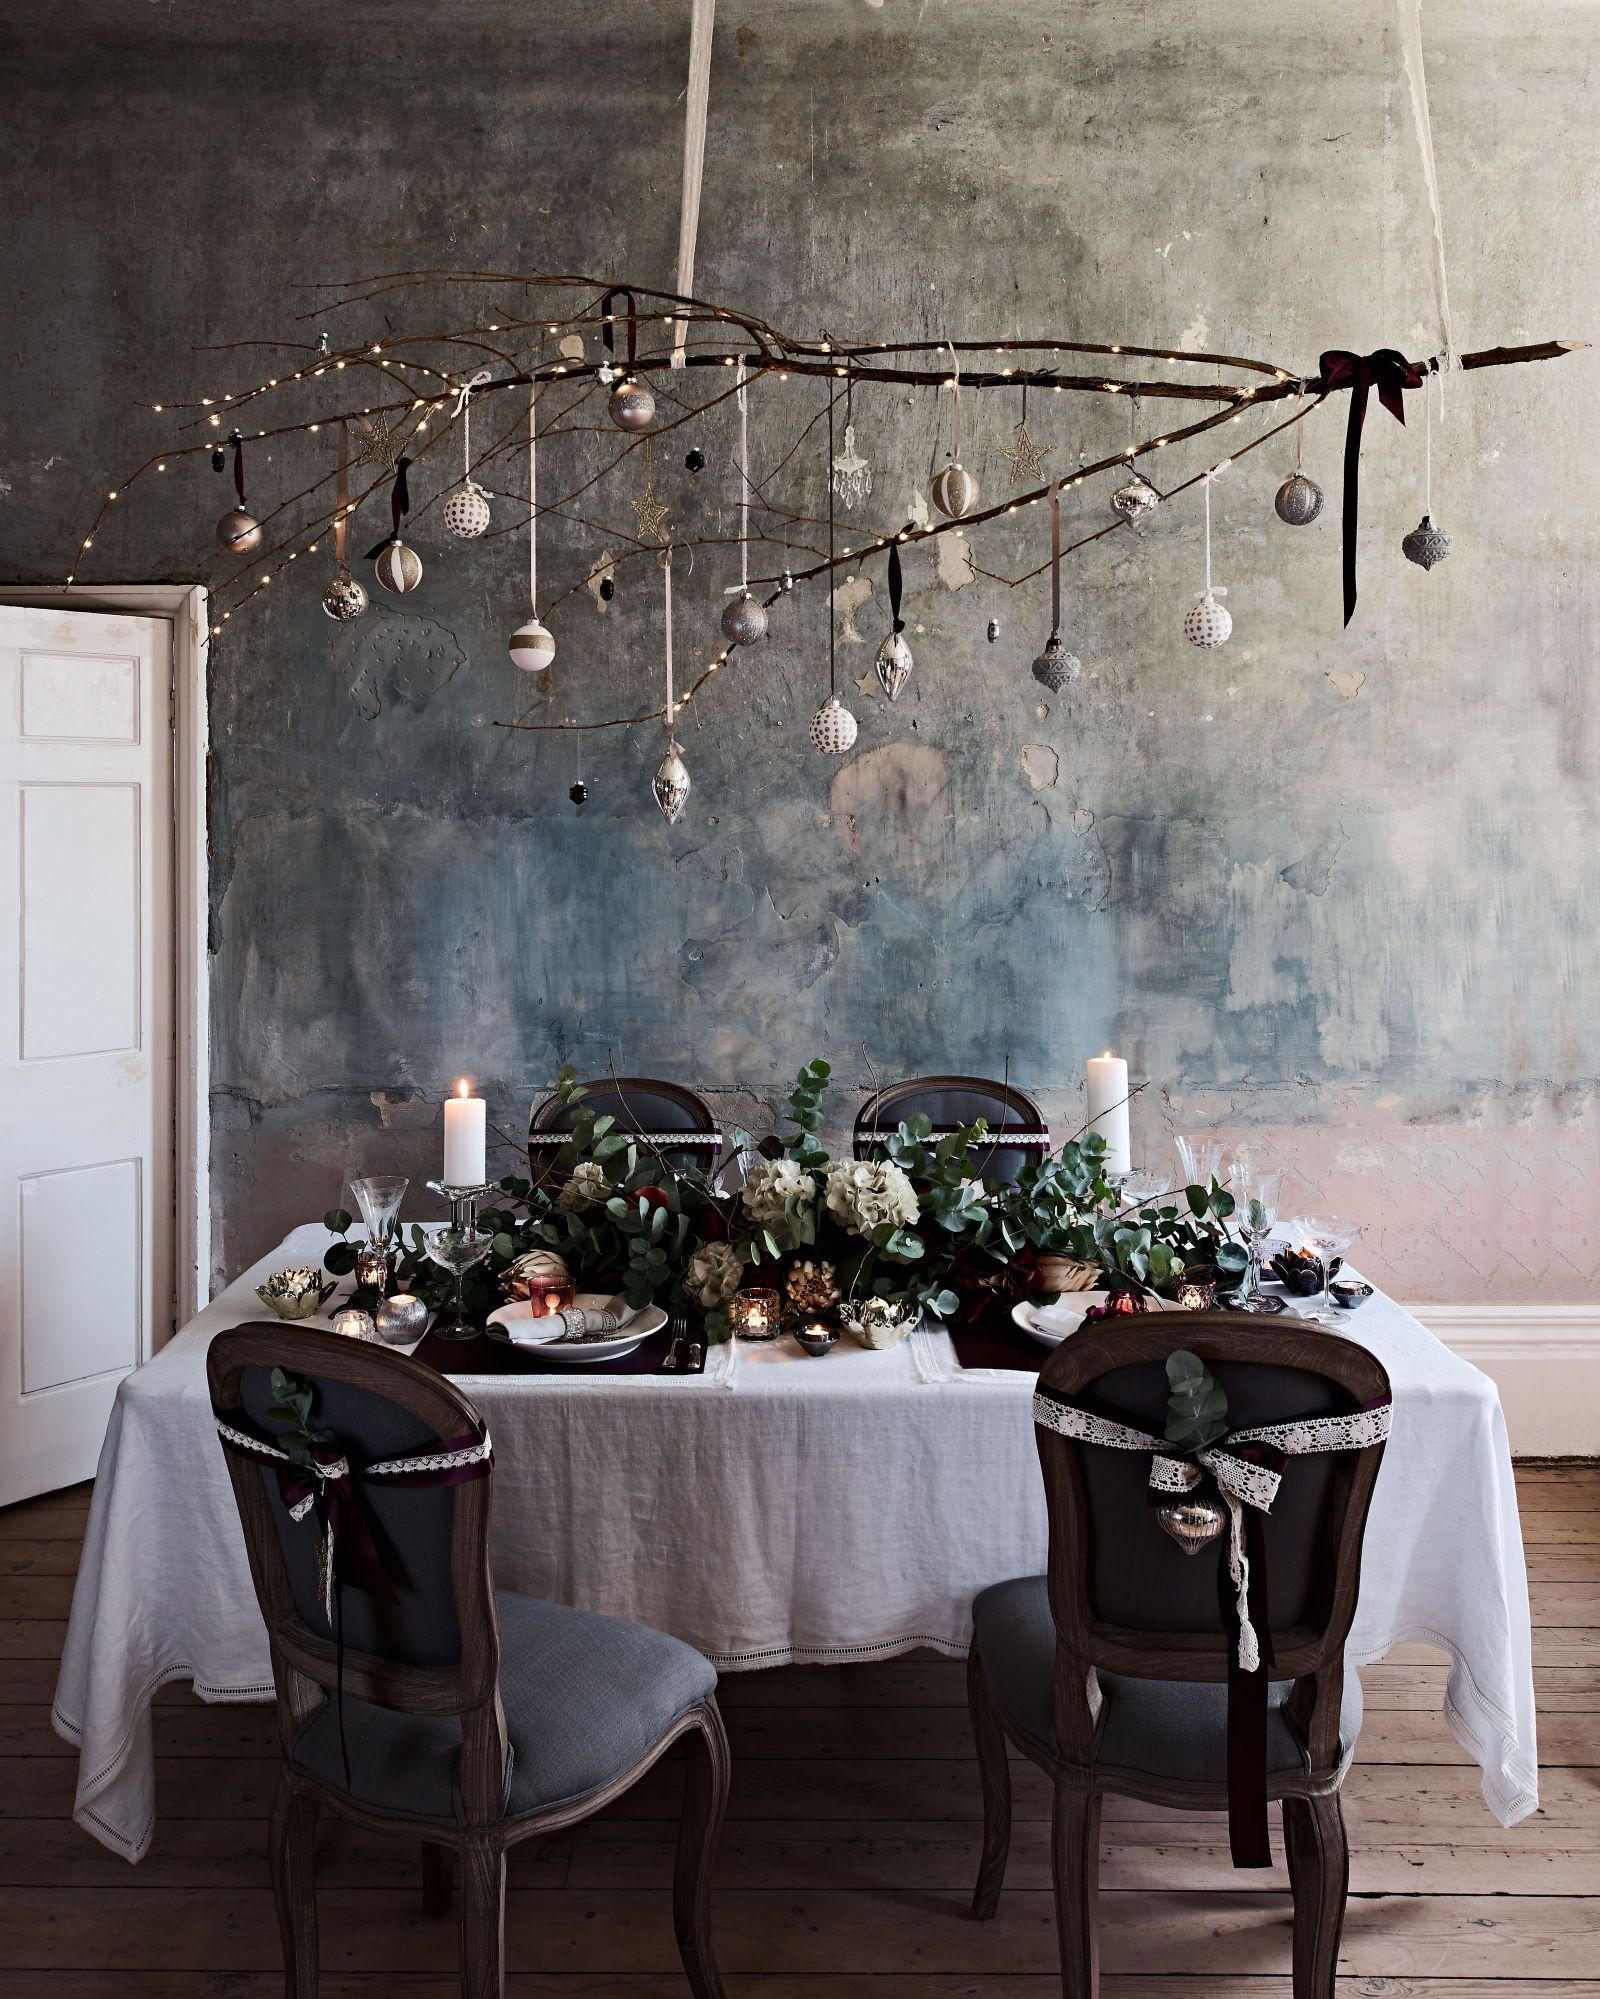 How To Create A Stylish Gothic Table Setting For Christmas